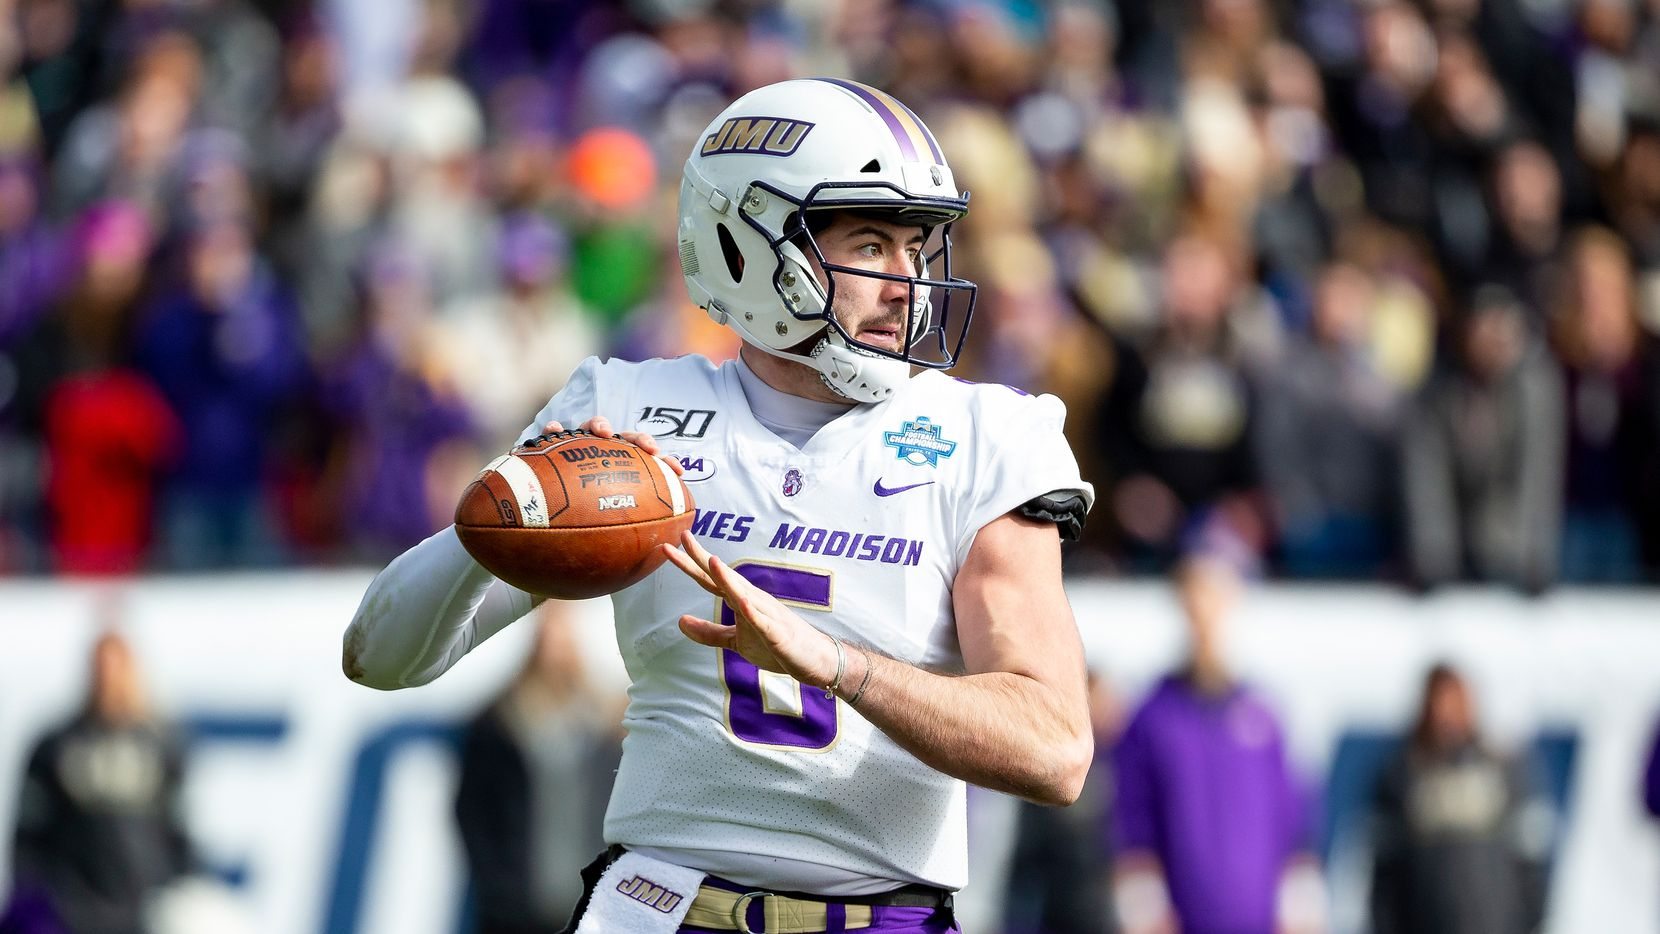 James Madison quarterback Ben DiNucci (6) looks to pass during the second half of the FCS championship NCAA college football game against North Dakota State, Saturday, Jan. 11, 2020, in Frisco, Texas. (AP Photo/Sam Hodde)